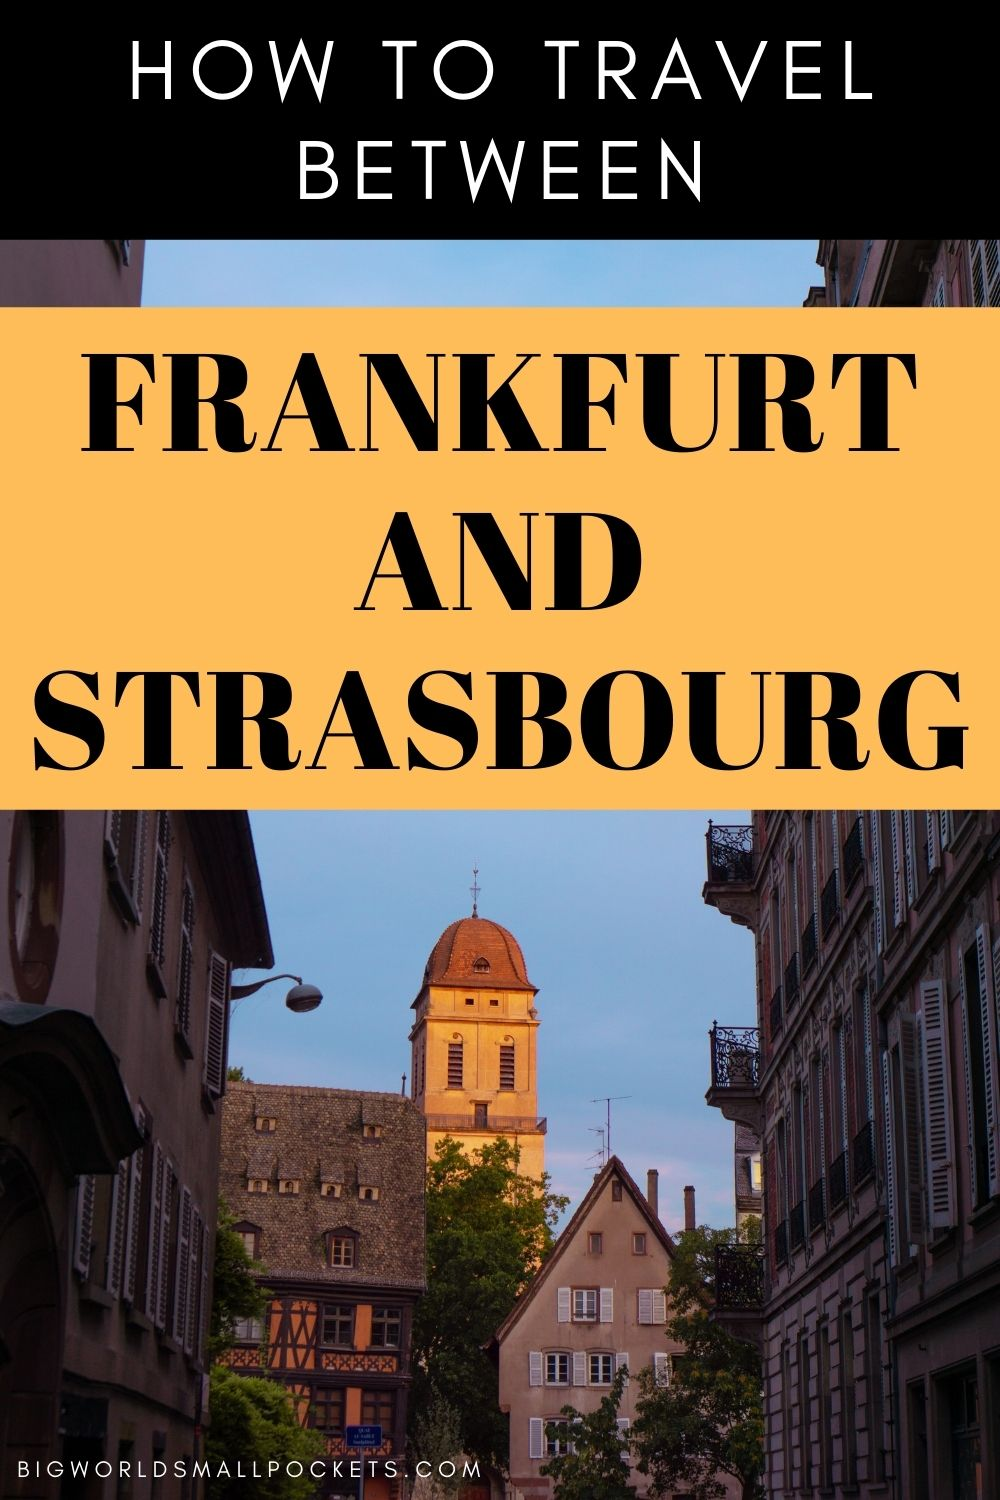 How to Travel Between Frankfurt in Germany and Strasbourg in France